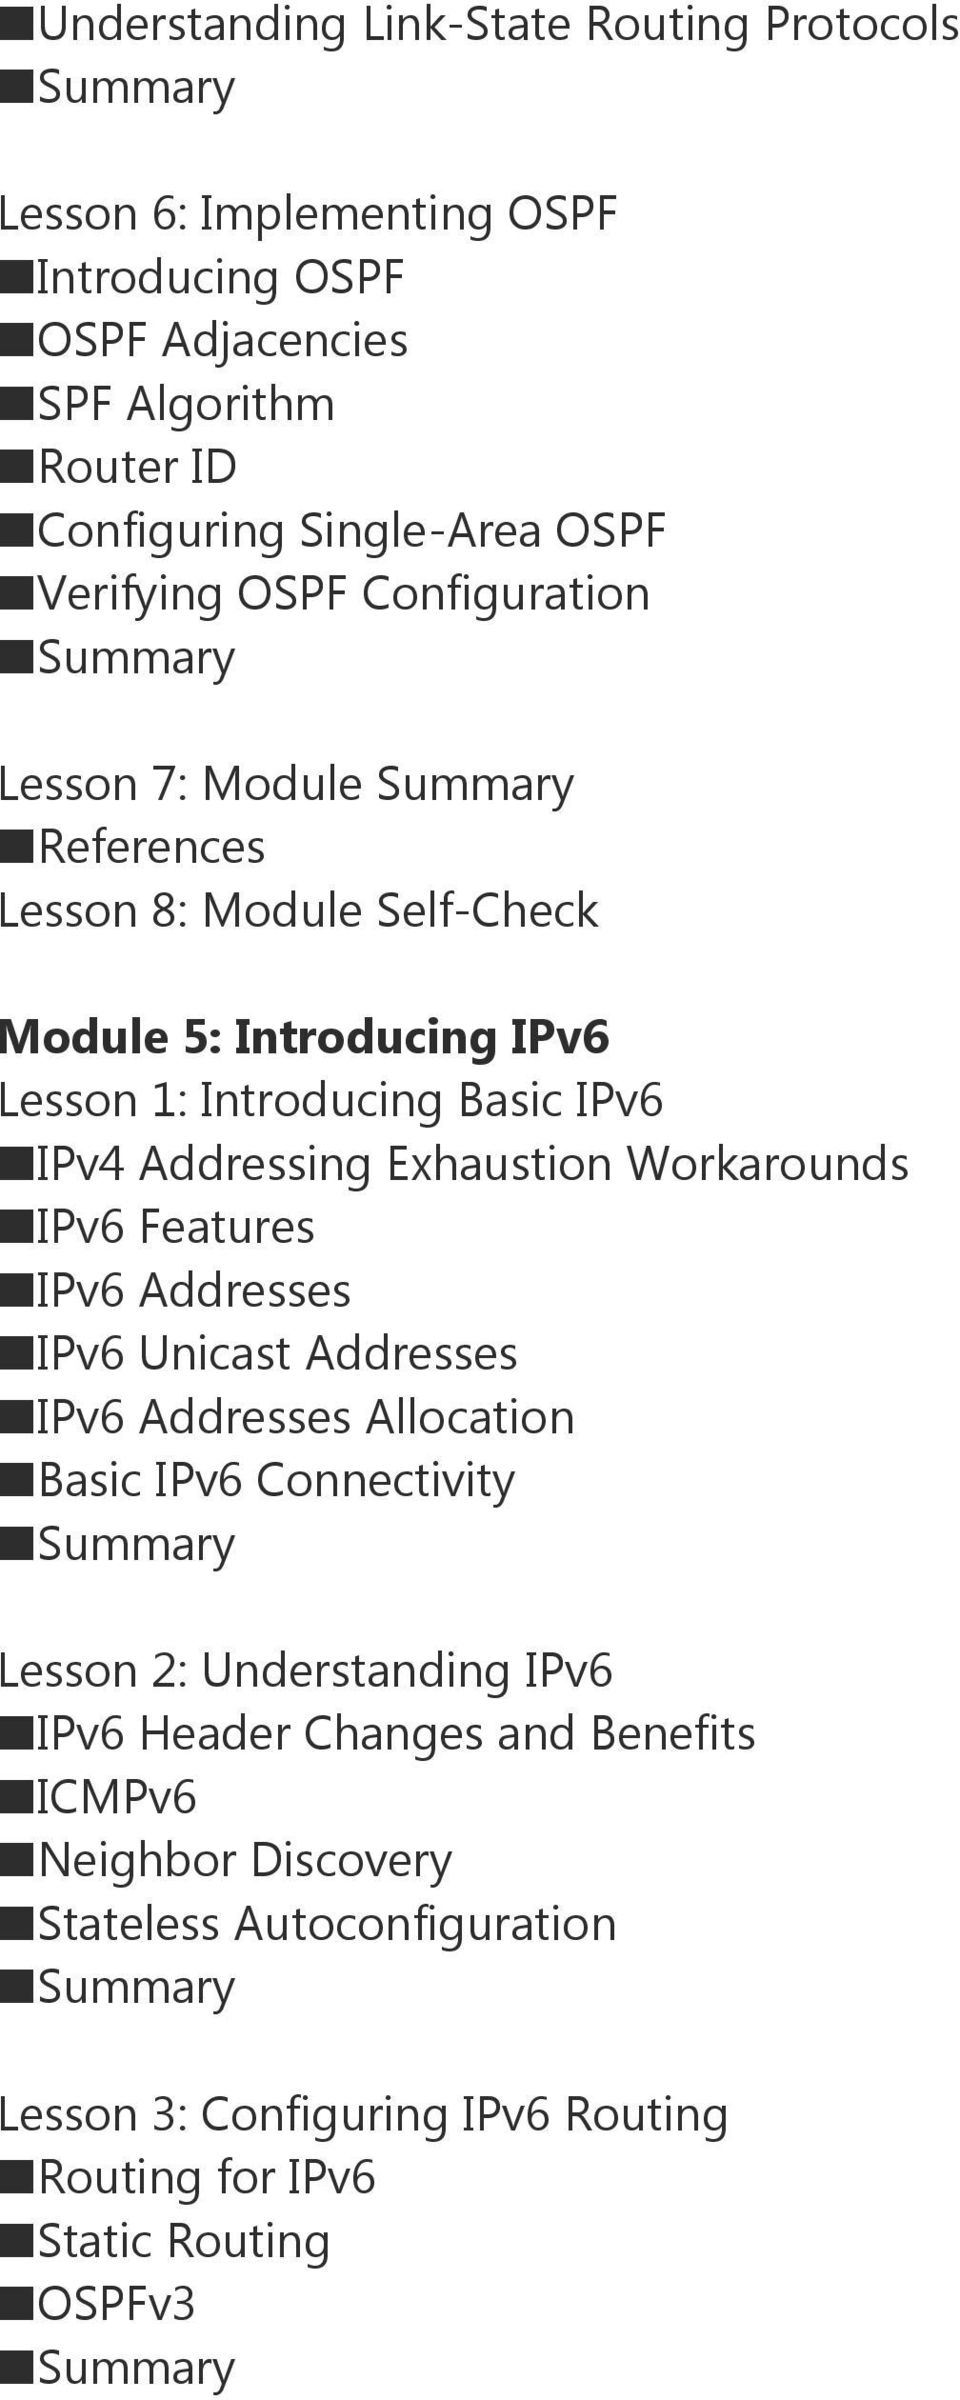 Addressing Exhaustion Workarounds IPv6 Features IPv6 Addresses IPv6 Unicast Addresses IPv6 Addresses Allocation Basic IPv6 Connectivity Lesson 2: Understanding